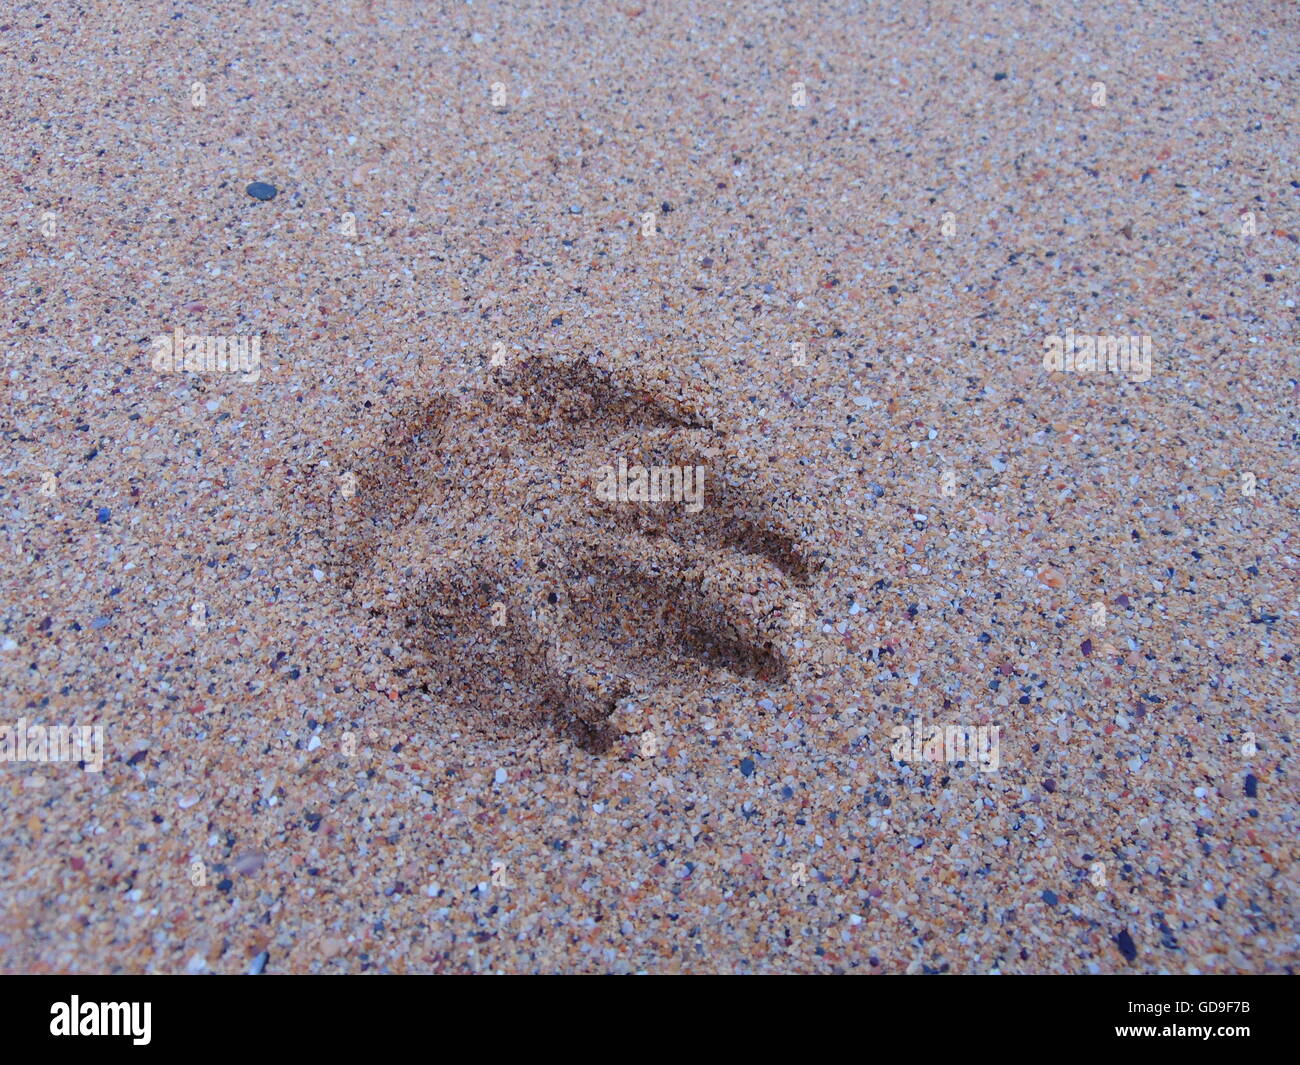 paw print in sand - Stock Image